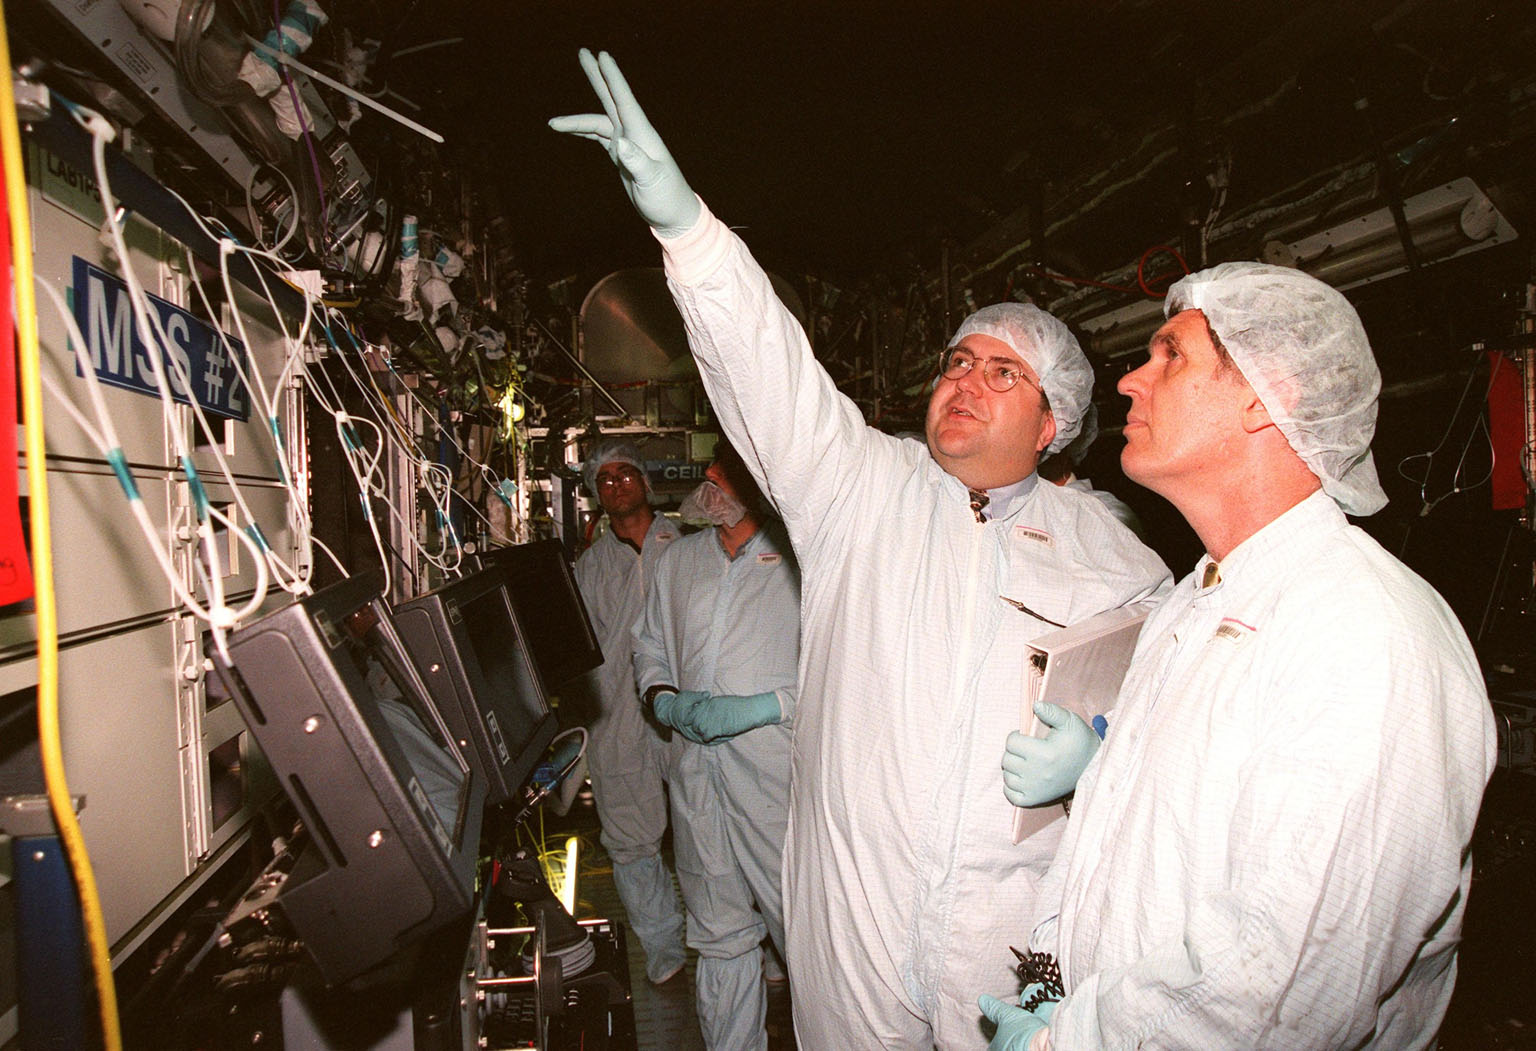 """KENNEDY SPACE CENTER, FLA. -- In the Space Station Processing Facility, Thomas R. """"Randy"""" Galloway, with the Space Station Hardware Integration Office, points out a feature to U.S. Rep. Dave Weldon (right) in the U.S. Lab, called """"Destiny."""" In the far background is Dana Gartzke, the congressman's chief of staff. Weldon is on the House Science Committee and vice chairman of the Space and Aeronautics Subcommittee. Destiny is scheduled to be launched on Space Shuttle Endeavour in early 2000. It will become the centerpiece of scientific research on the ISS, with five equipment racks aboard to provide essential functions for station systems, including high data-rate communications, and to maintain the station's orientation using control gyroscopes launched earlier. Additional equipment and research racks will be installed in the laboratory on subsequent Shuttle flights"""